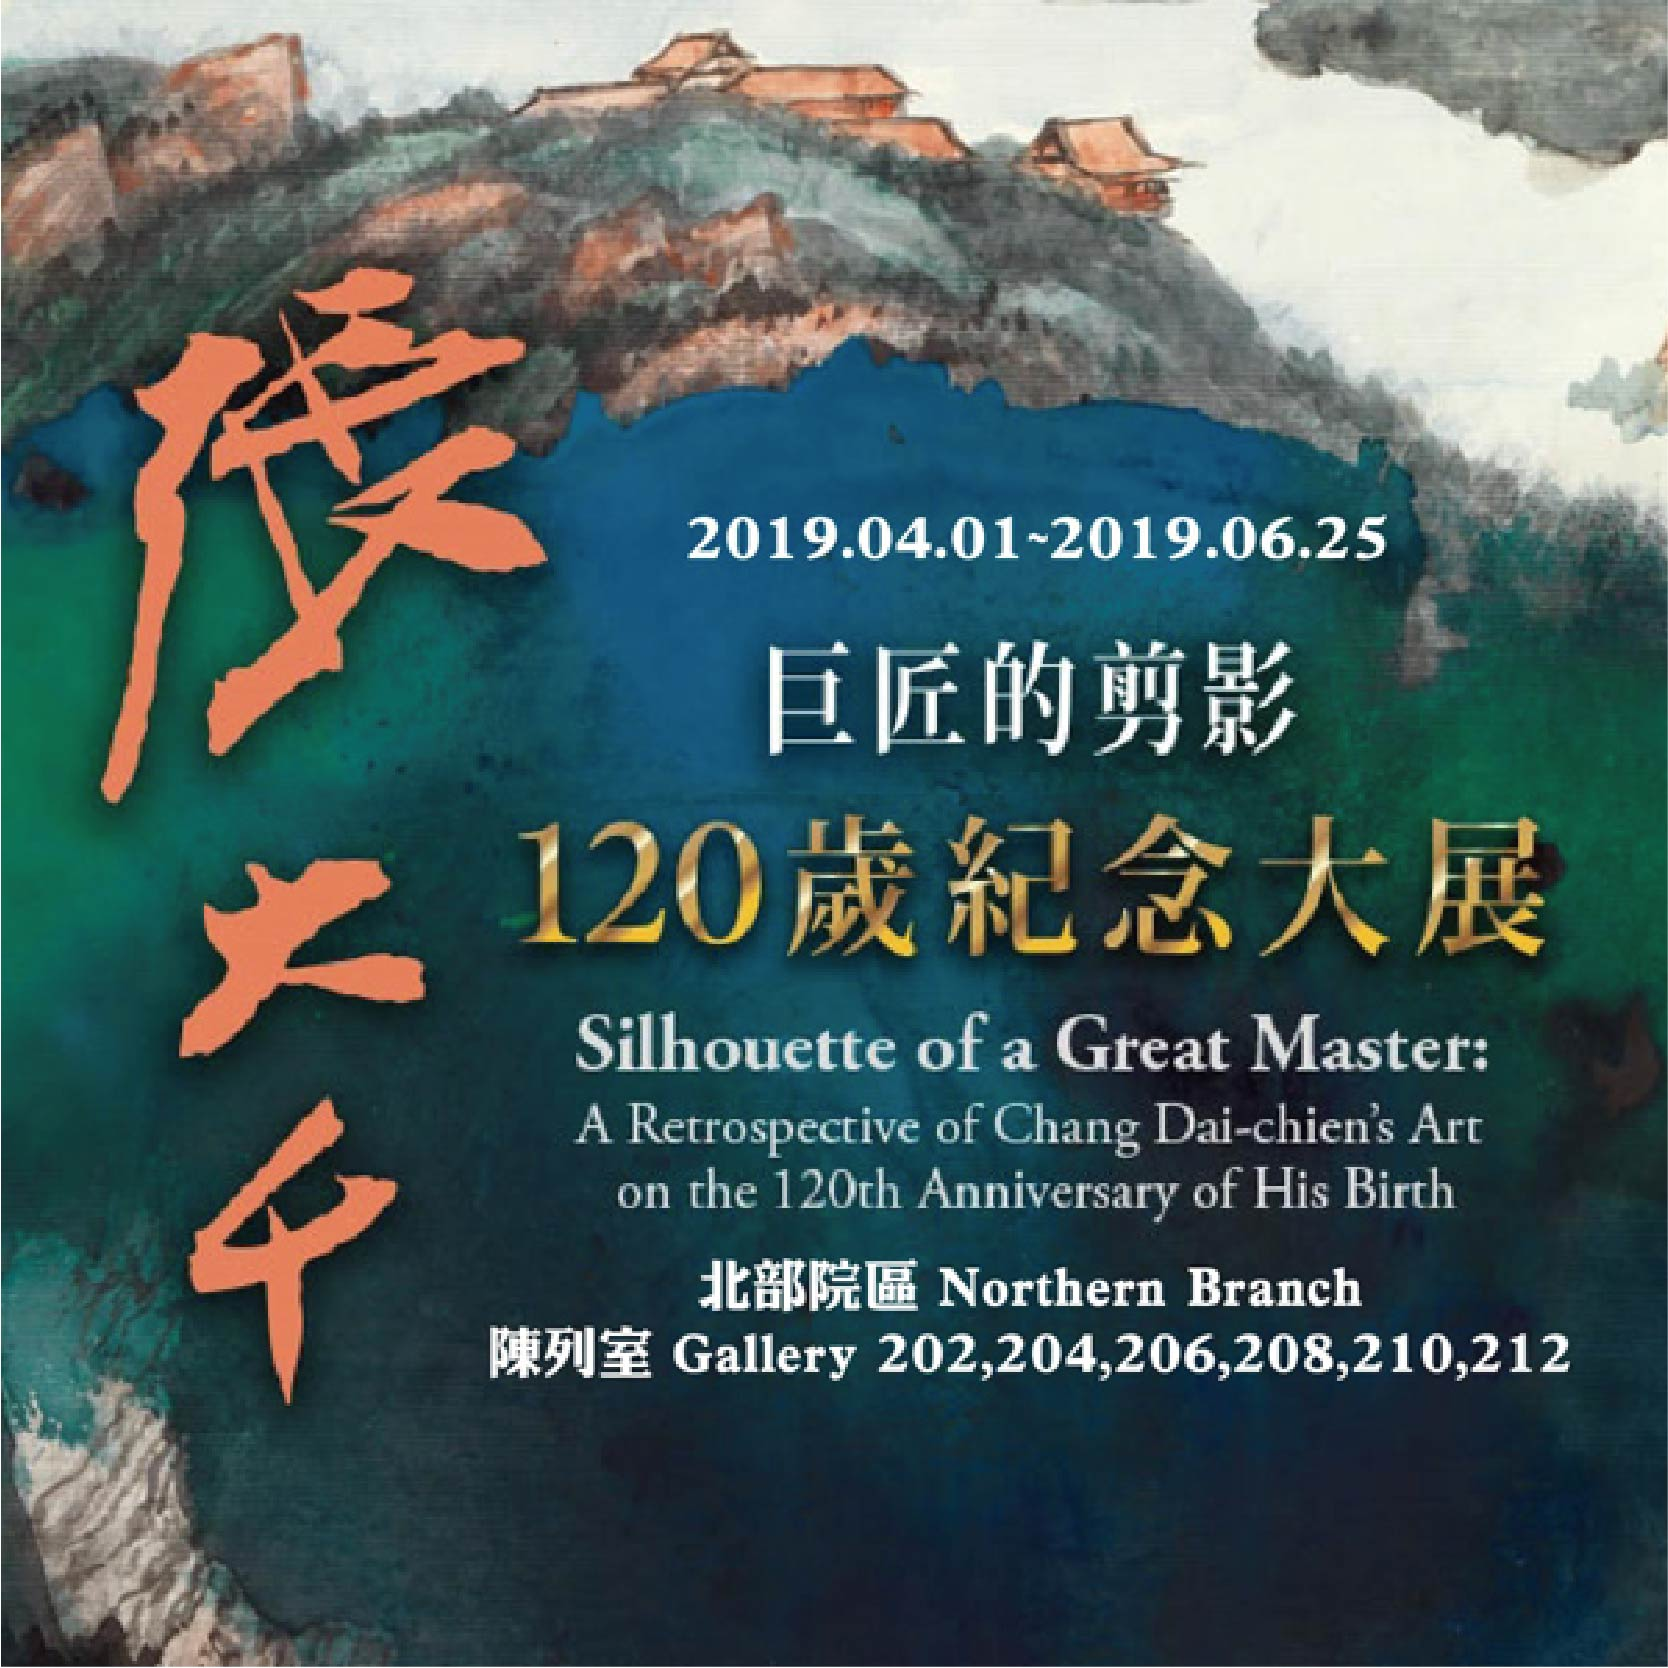 巨匠的剪影—張大千120歲紀念大展 Silhouette of a Great Master: A Retrospective of Chang Dai-chien\